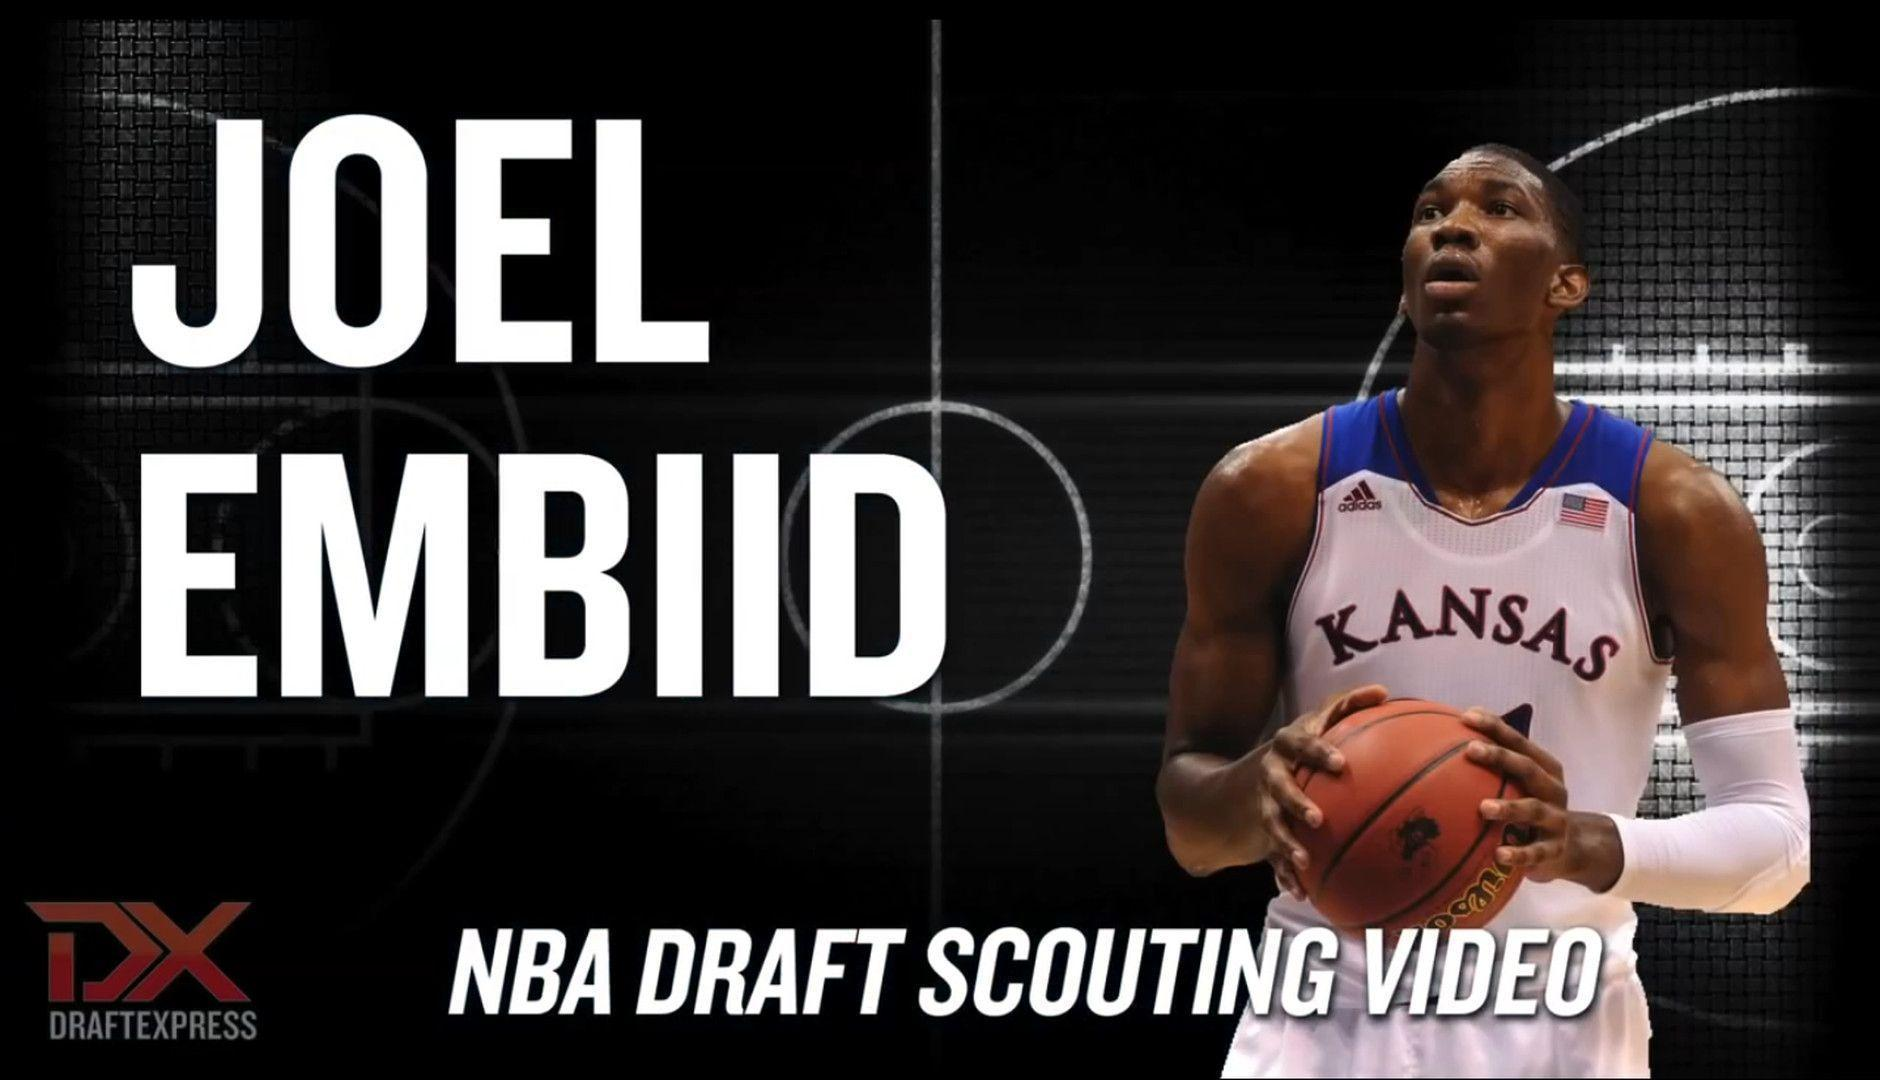 The big Joel Embiid scouting report: KU big man is the No. 1 pick ...